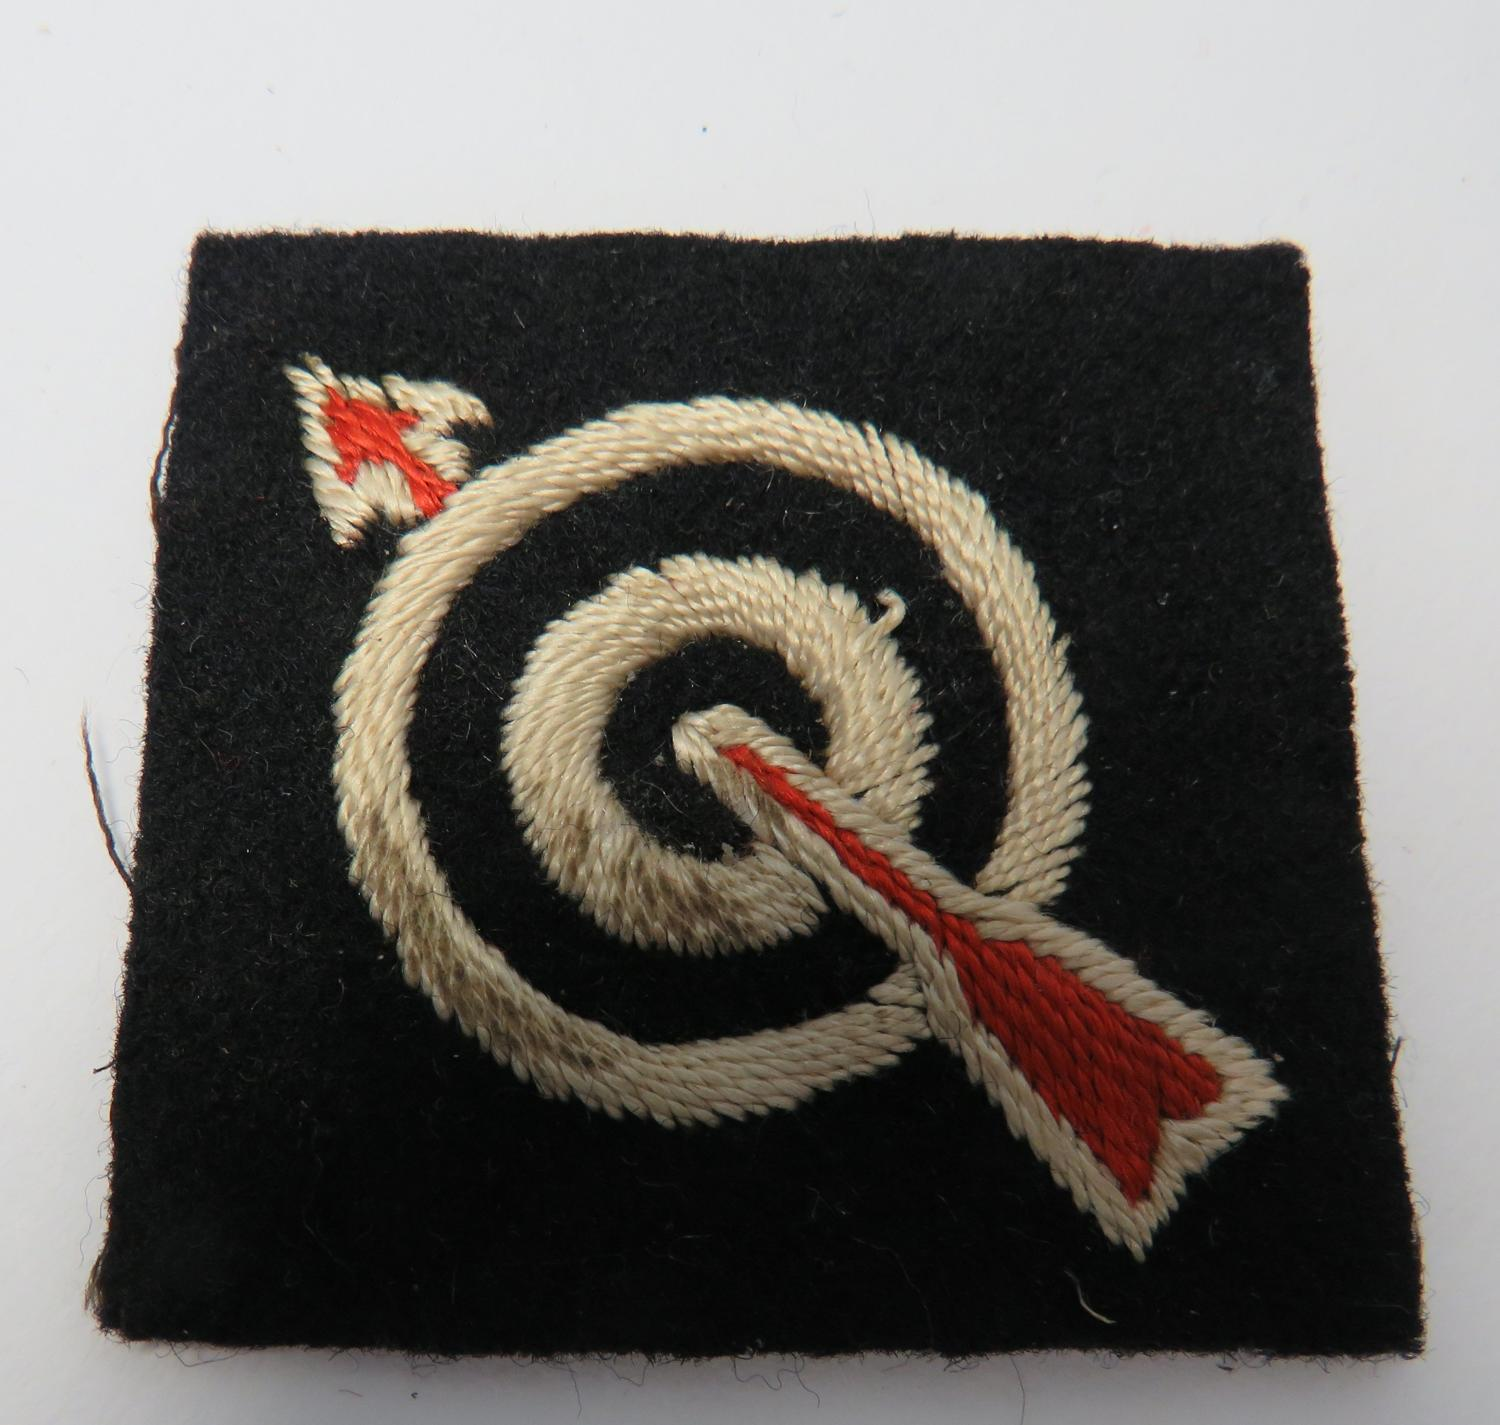 6th Anti Aircraft Division Formation Badge